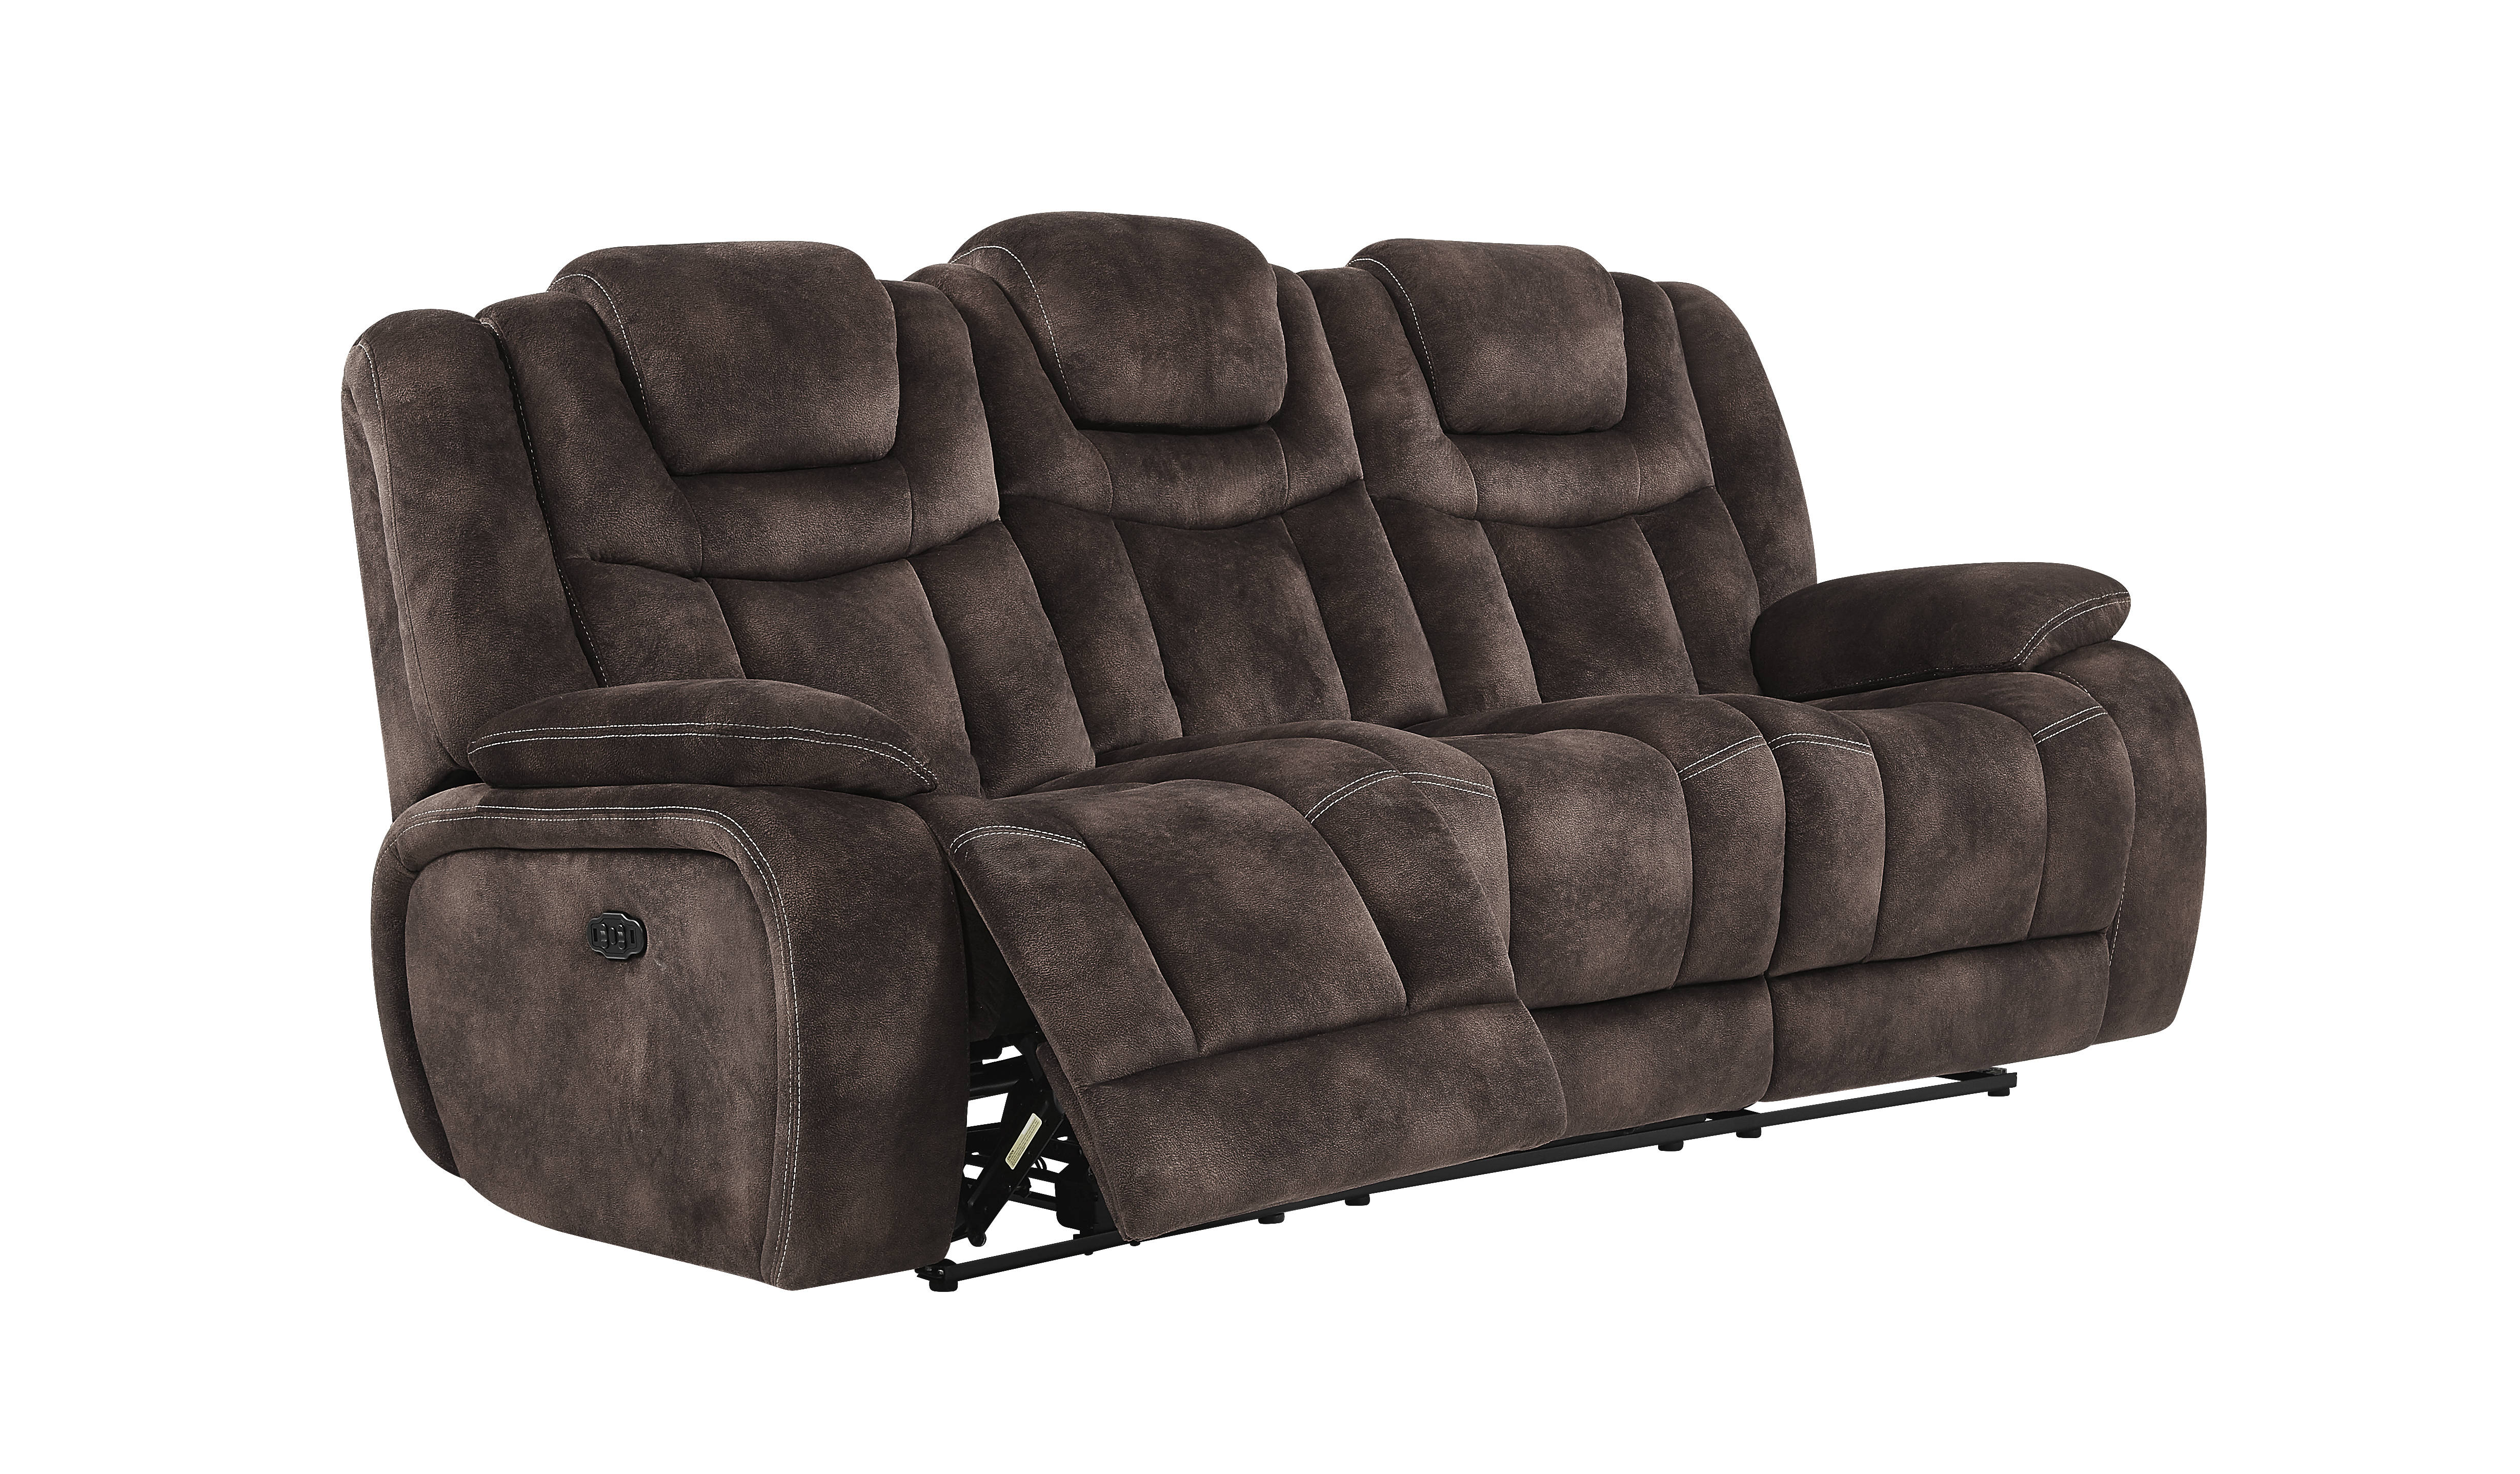 Tremendous Global Furniture U1706 Chocolate Fabric Power Reclining Sofa Ocoug Best Dining Table And Chair Ideas Images Ocougorg